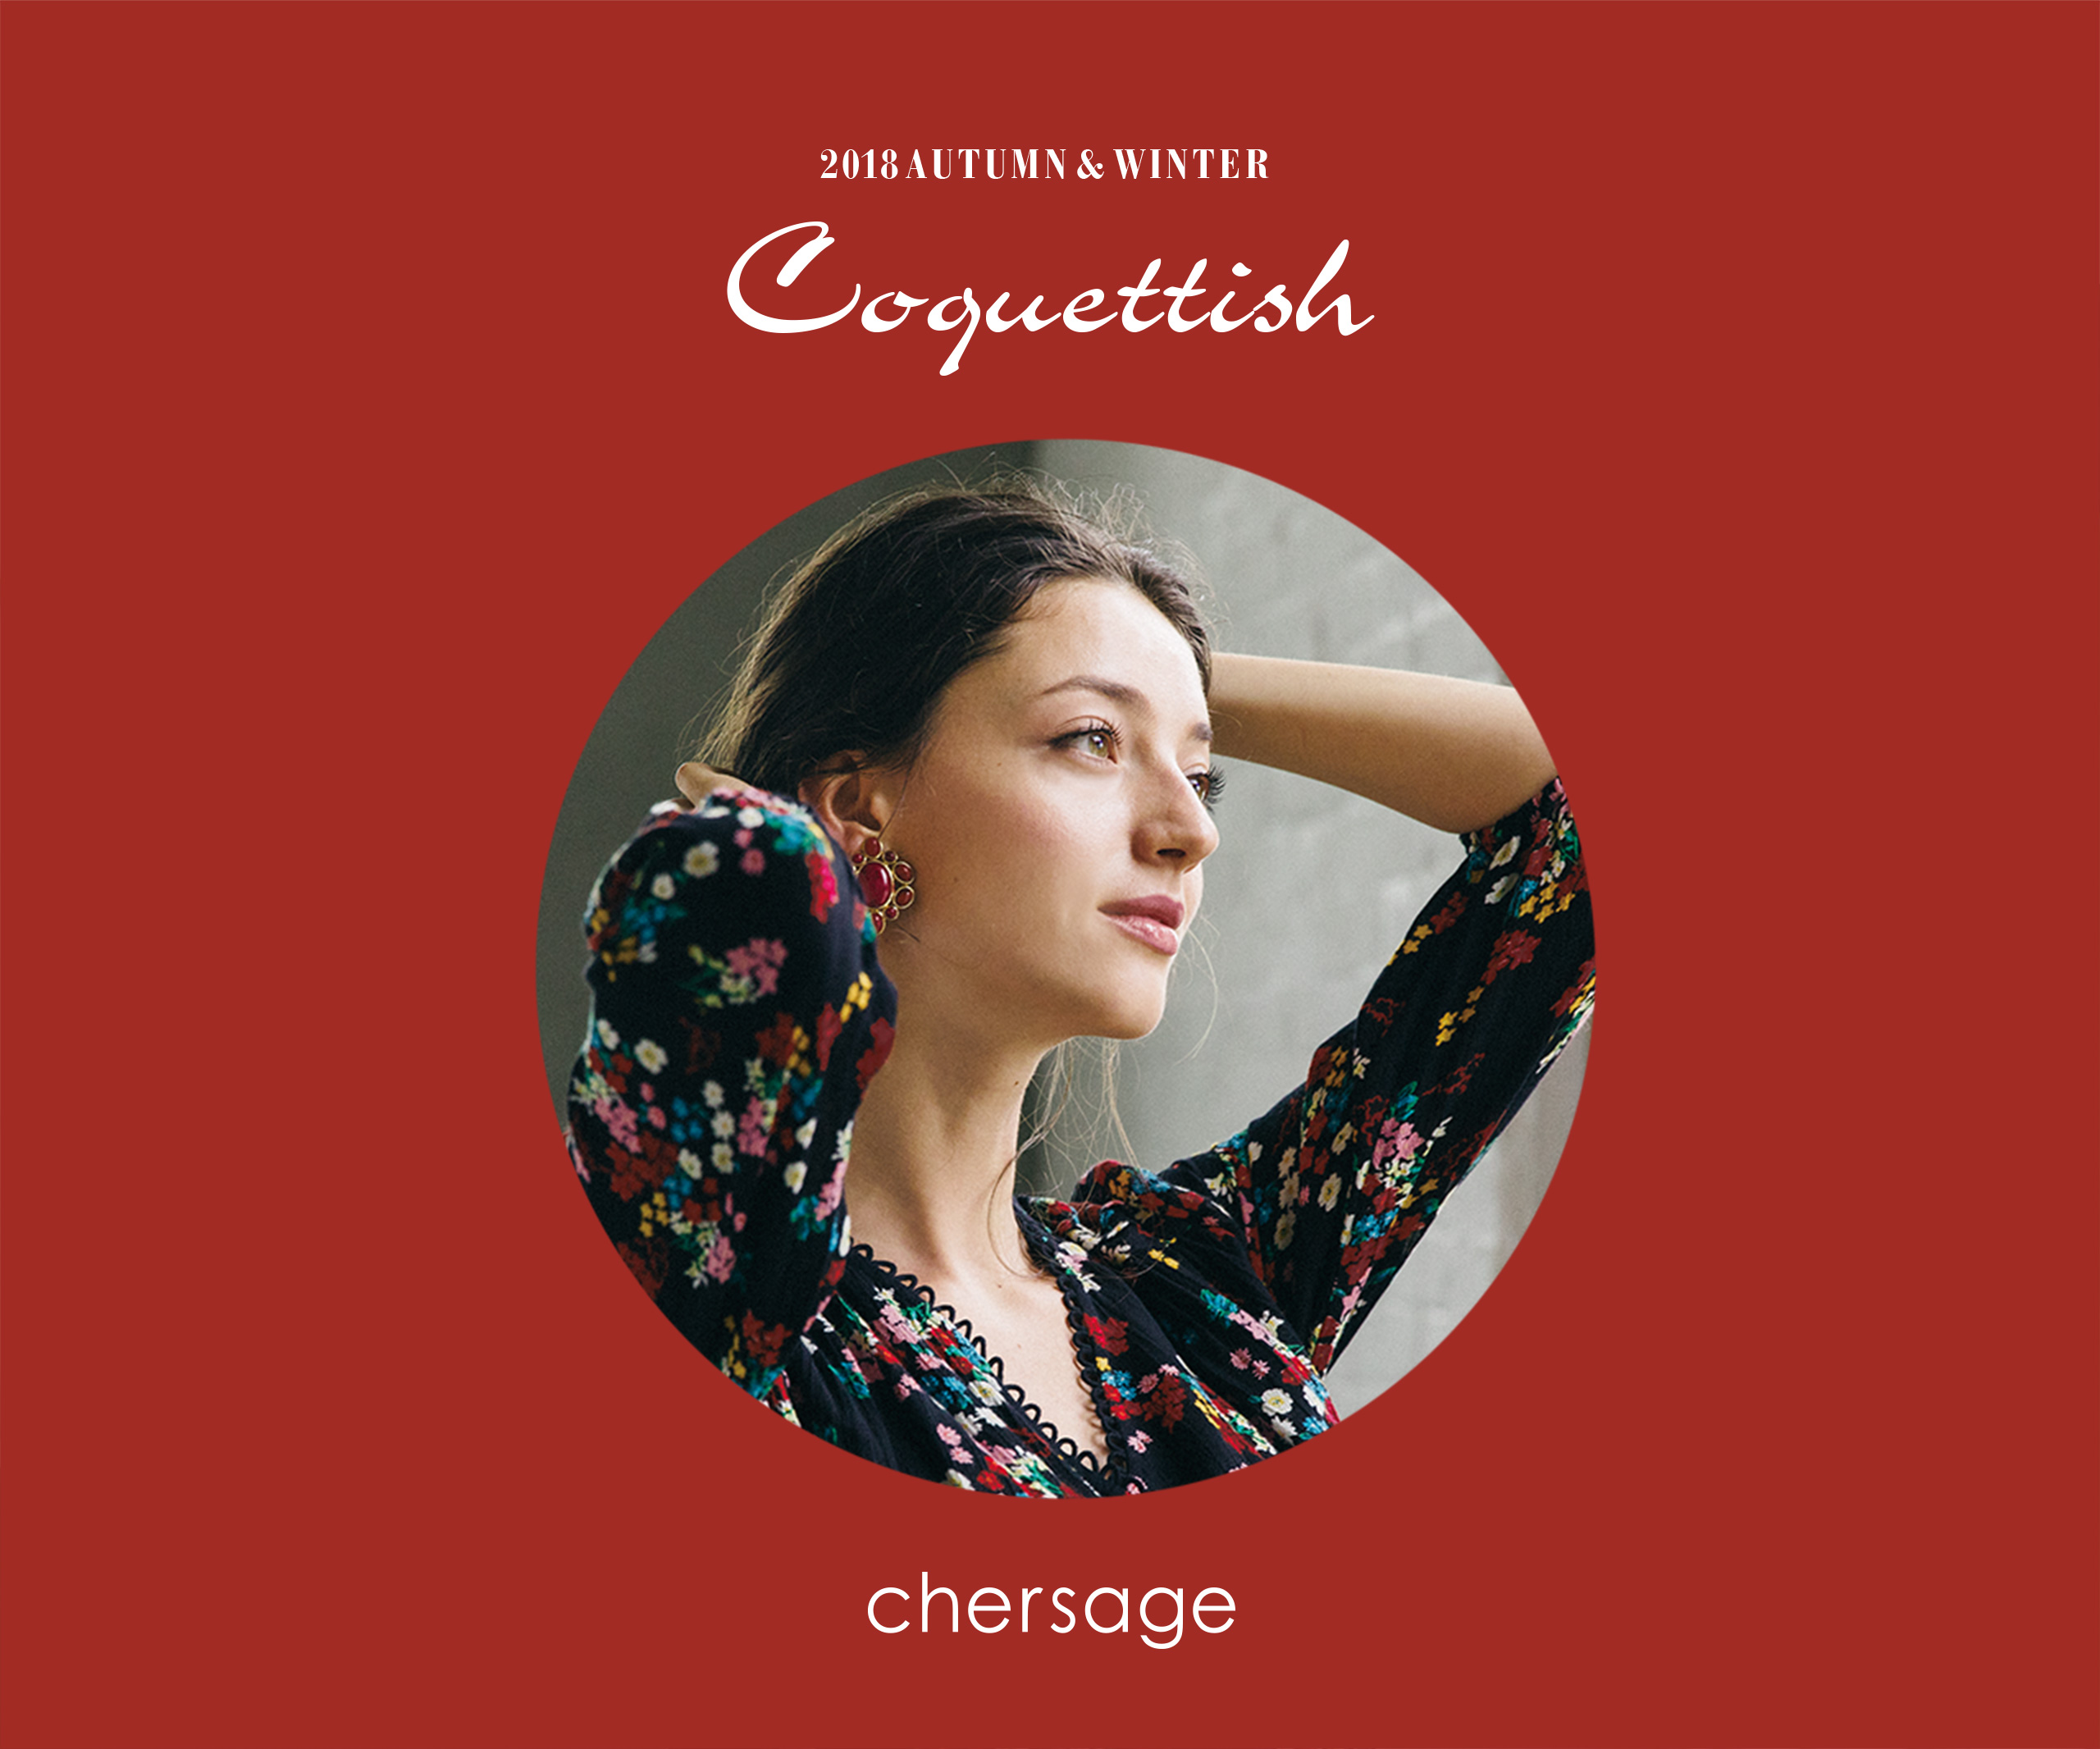 2018 Autumn & Winter Coquettish Chersage